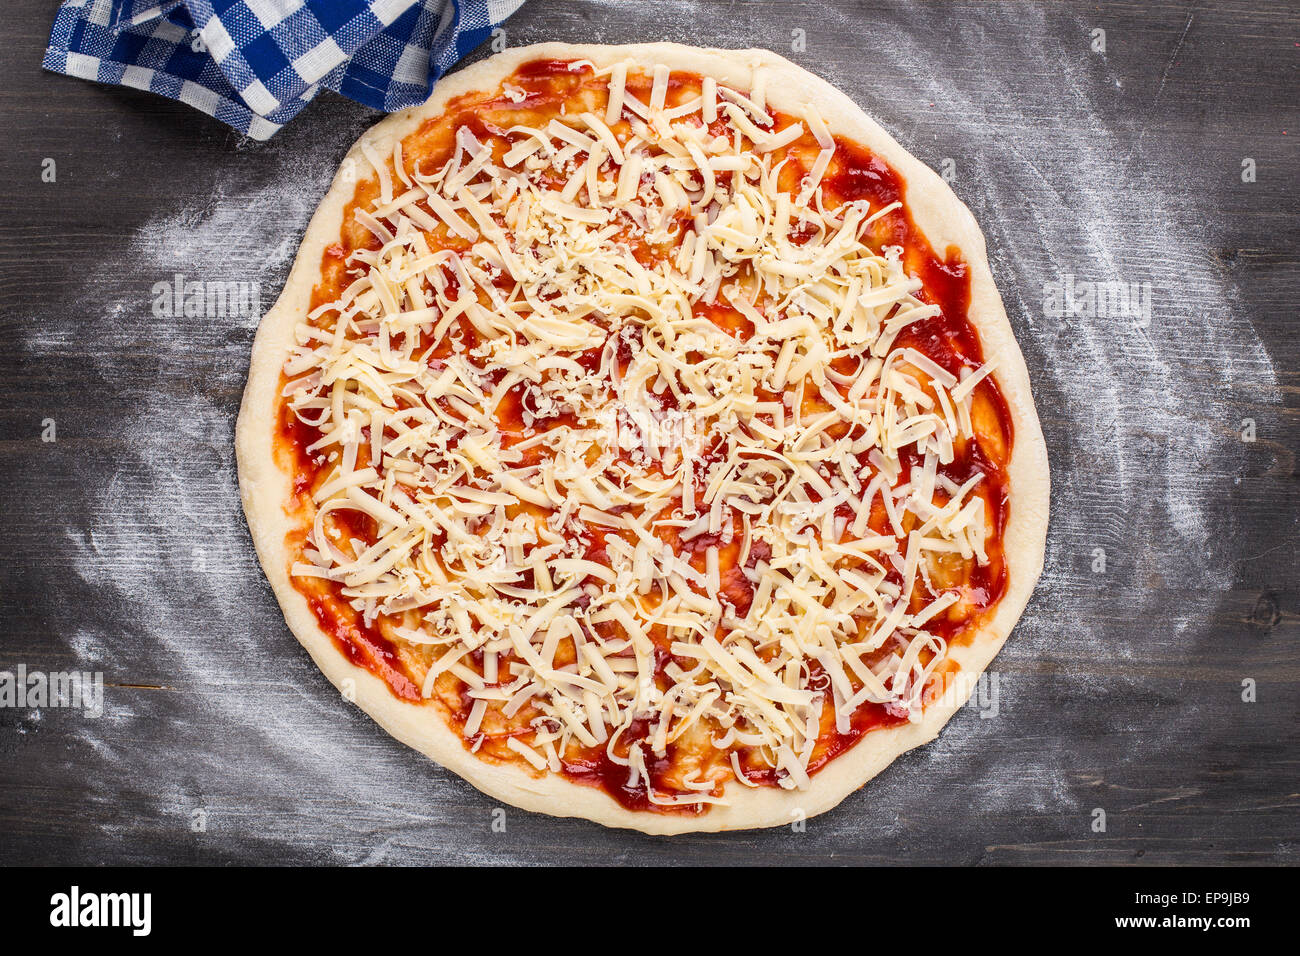 Making Of Pizza Tomato Sauce And Cheese On A Dough Stock Photo Royalty Free